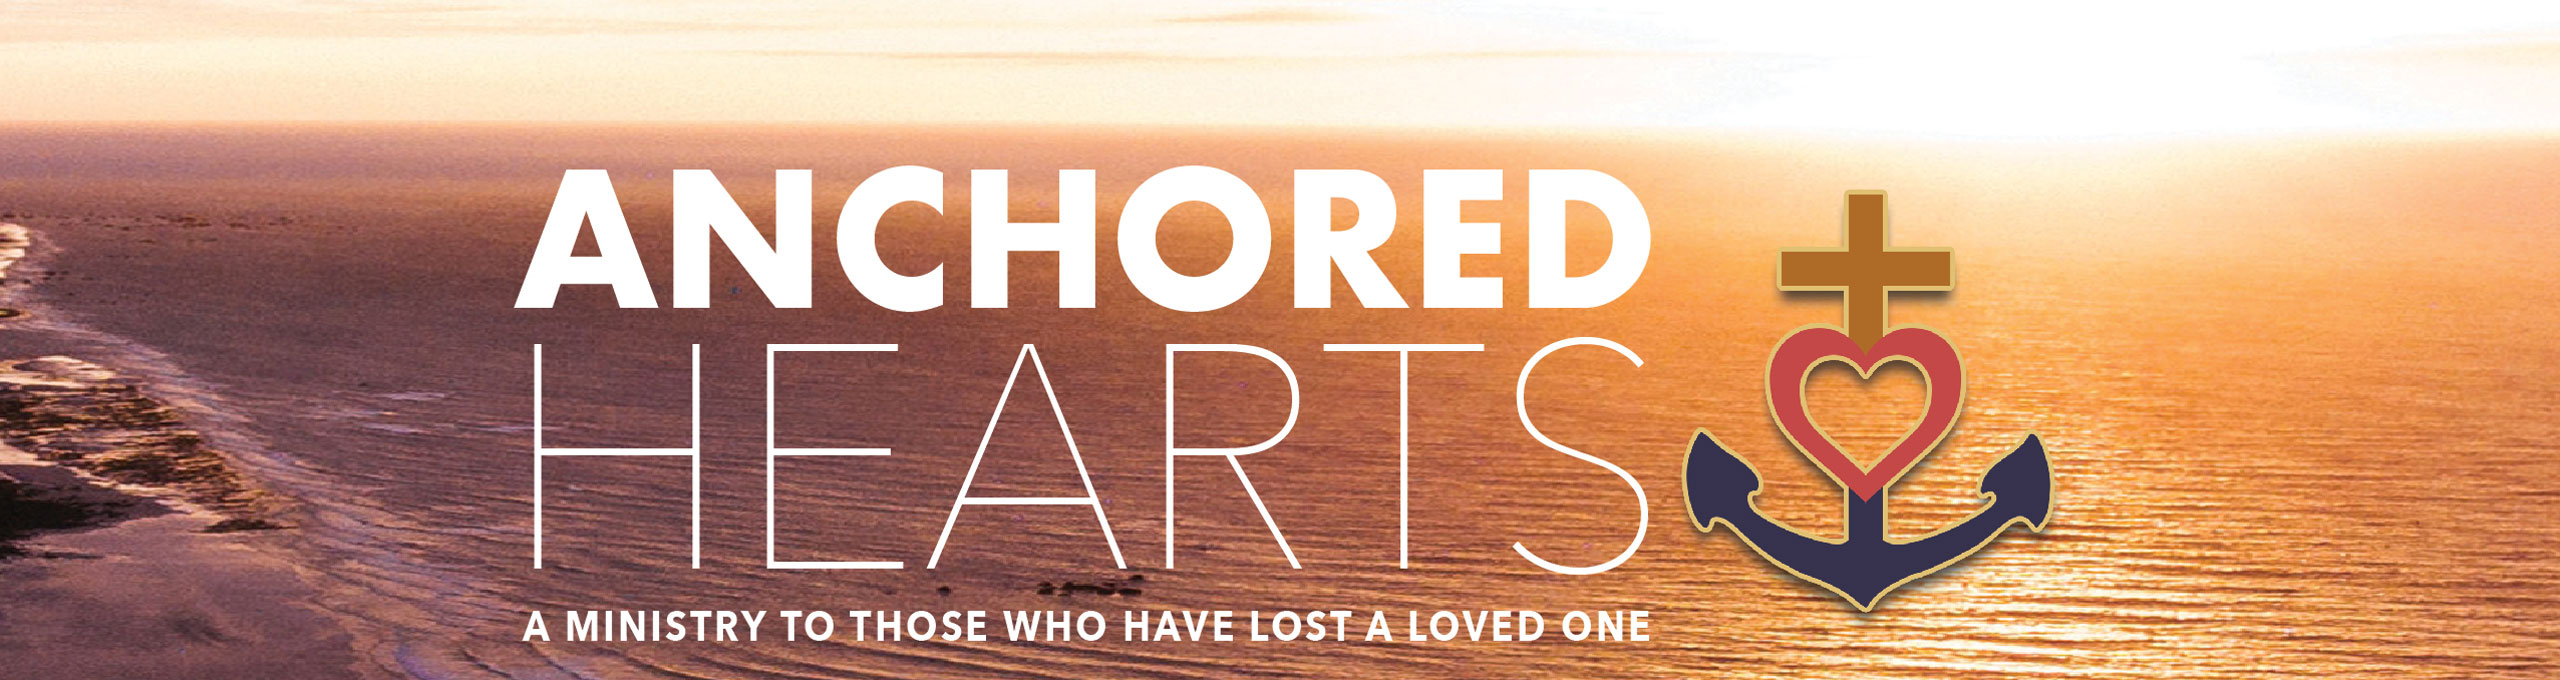 Anchored Hearts Studies